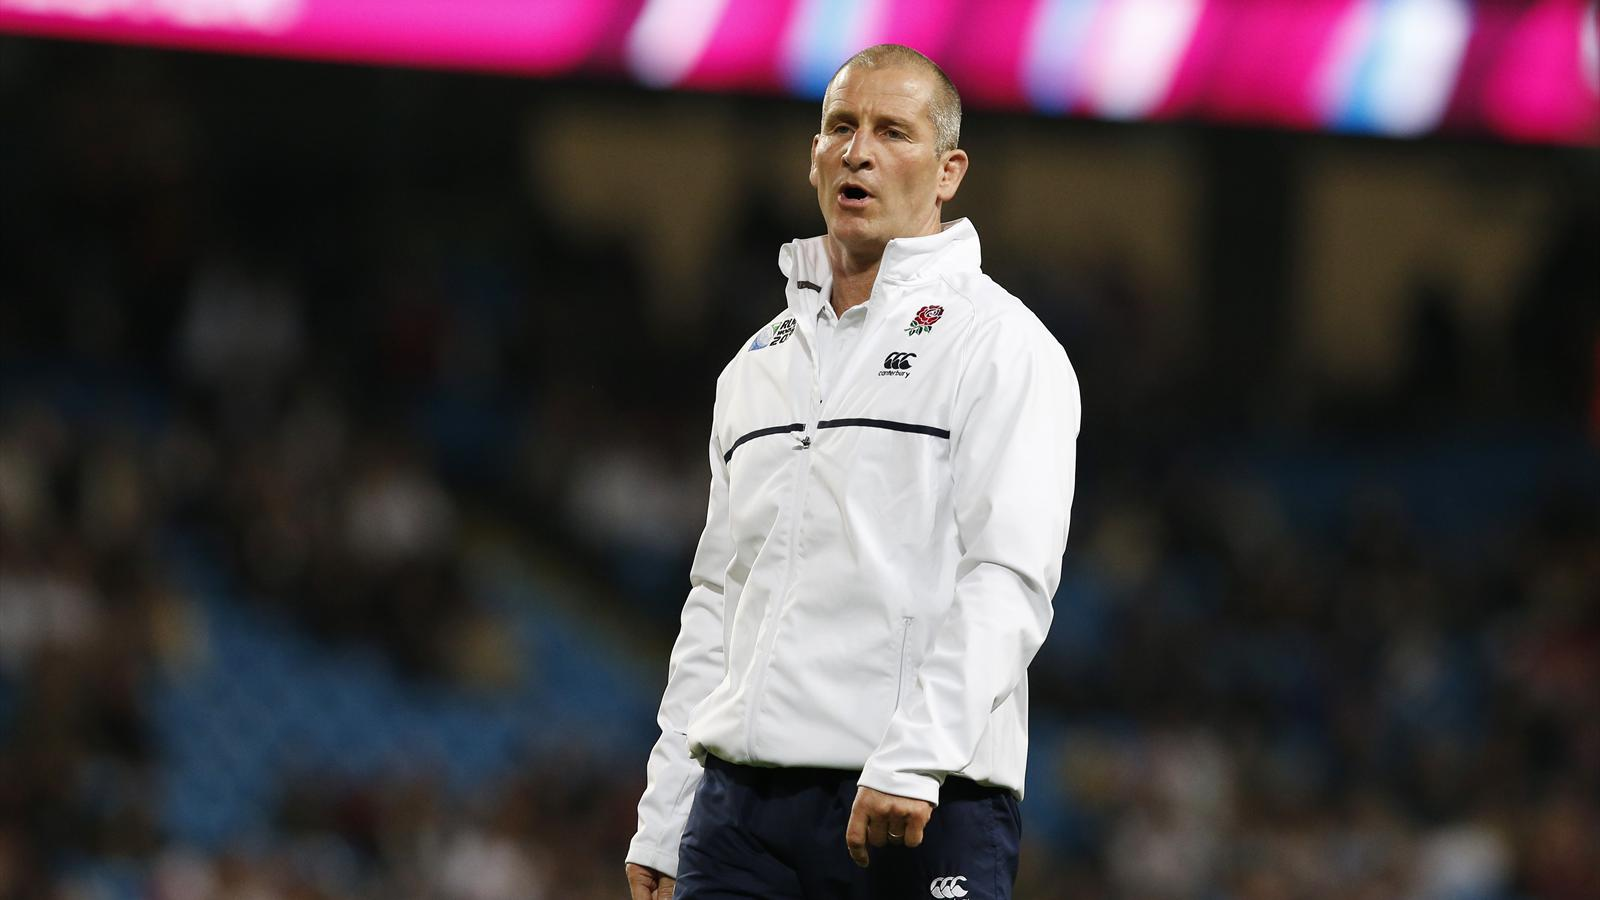 England coach Stuart Lancaster looks dejected after his side crashed out of the Rugby World Cup